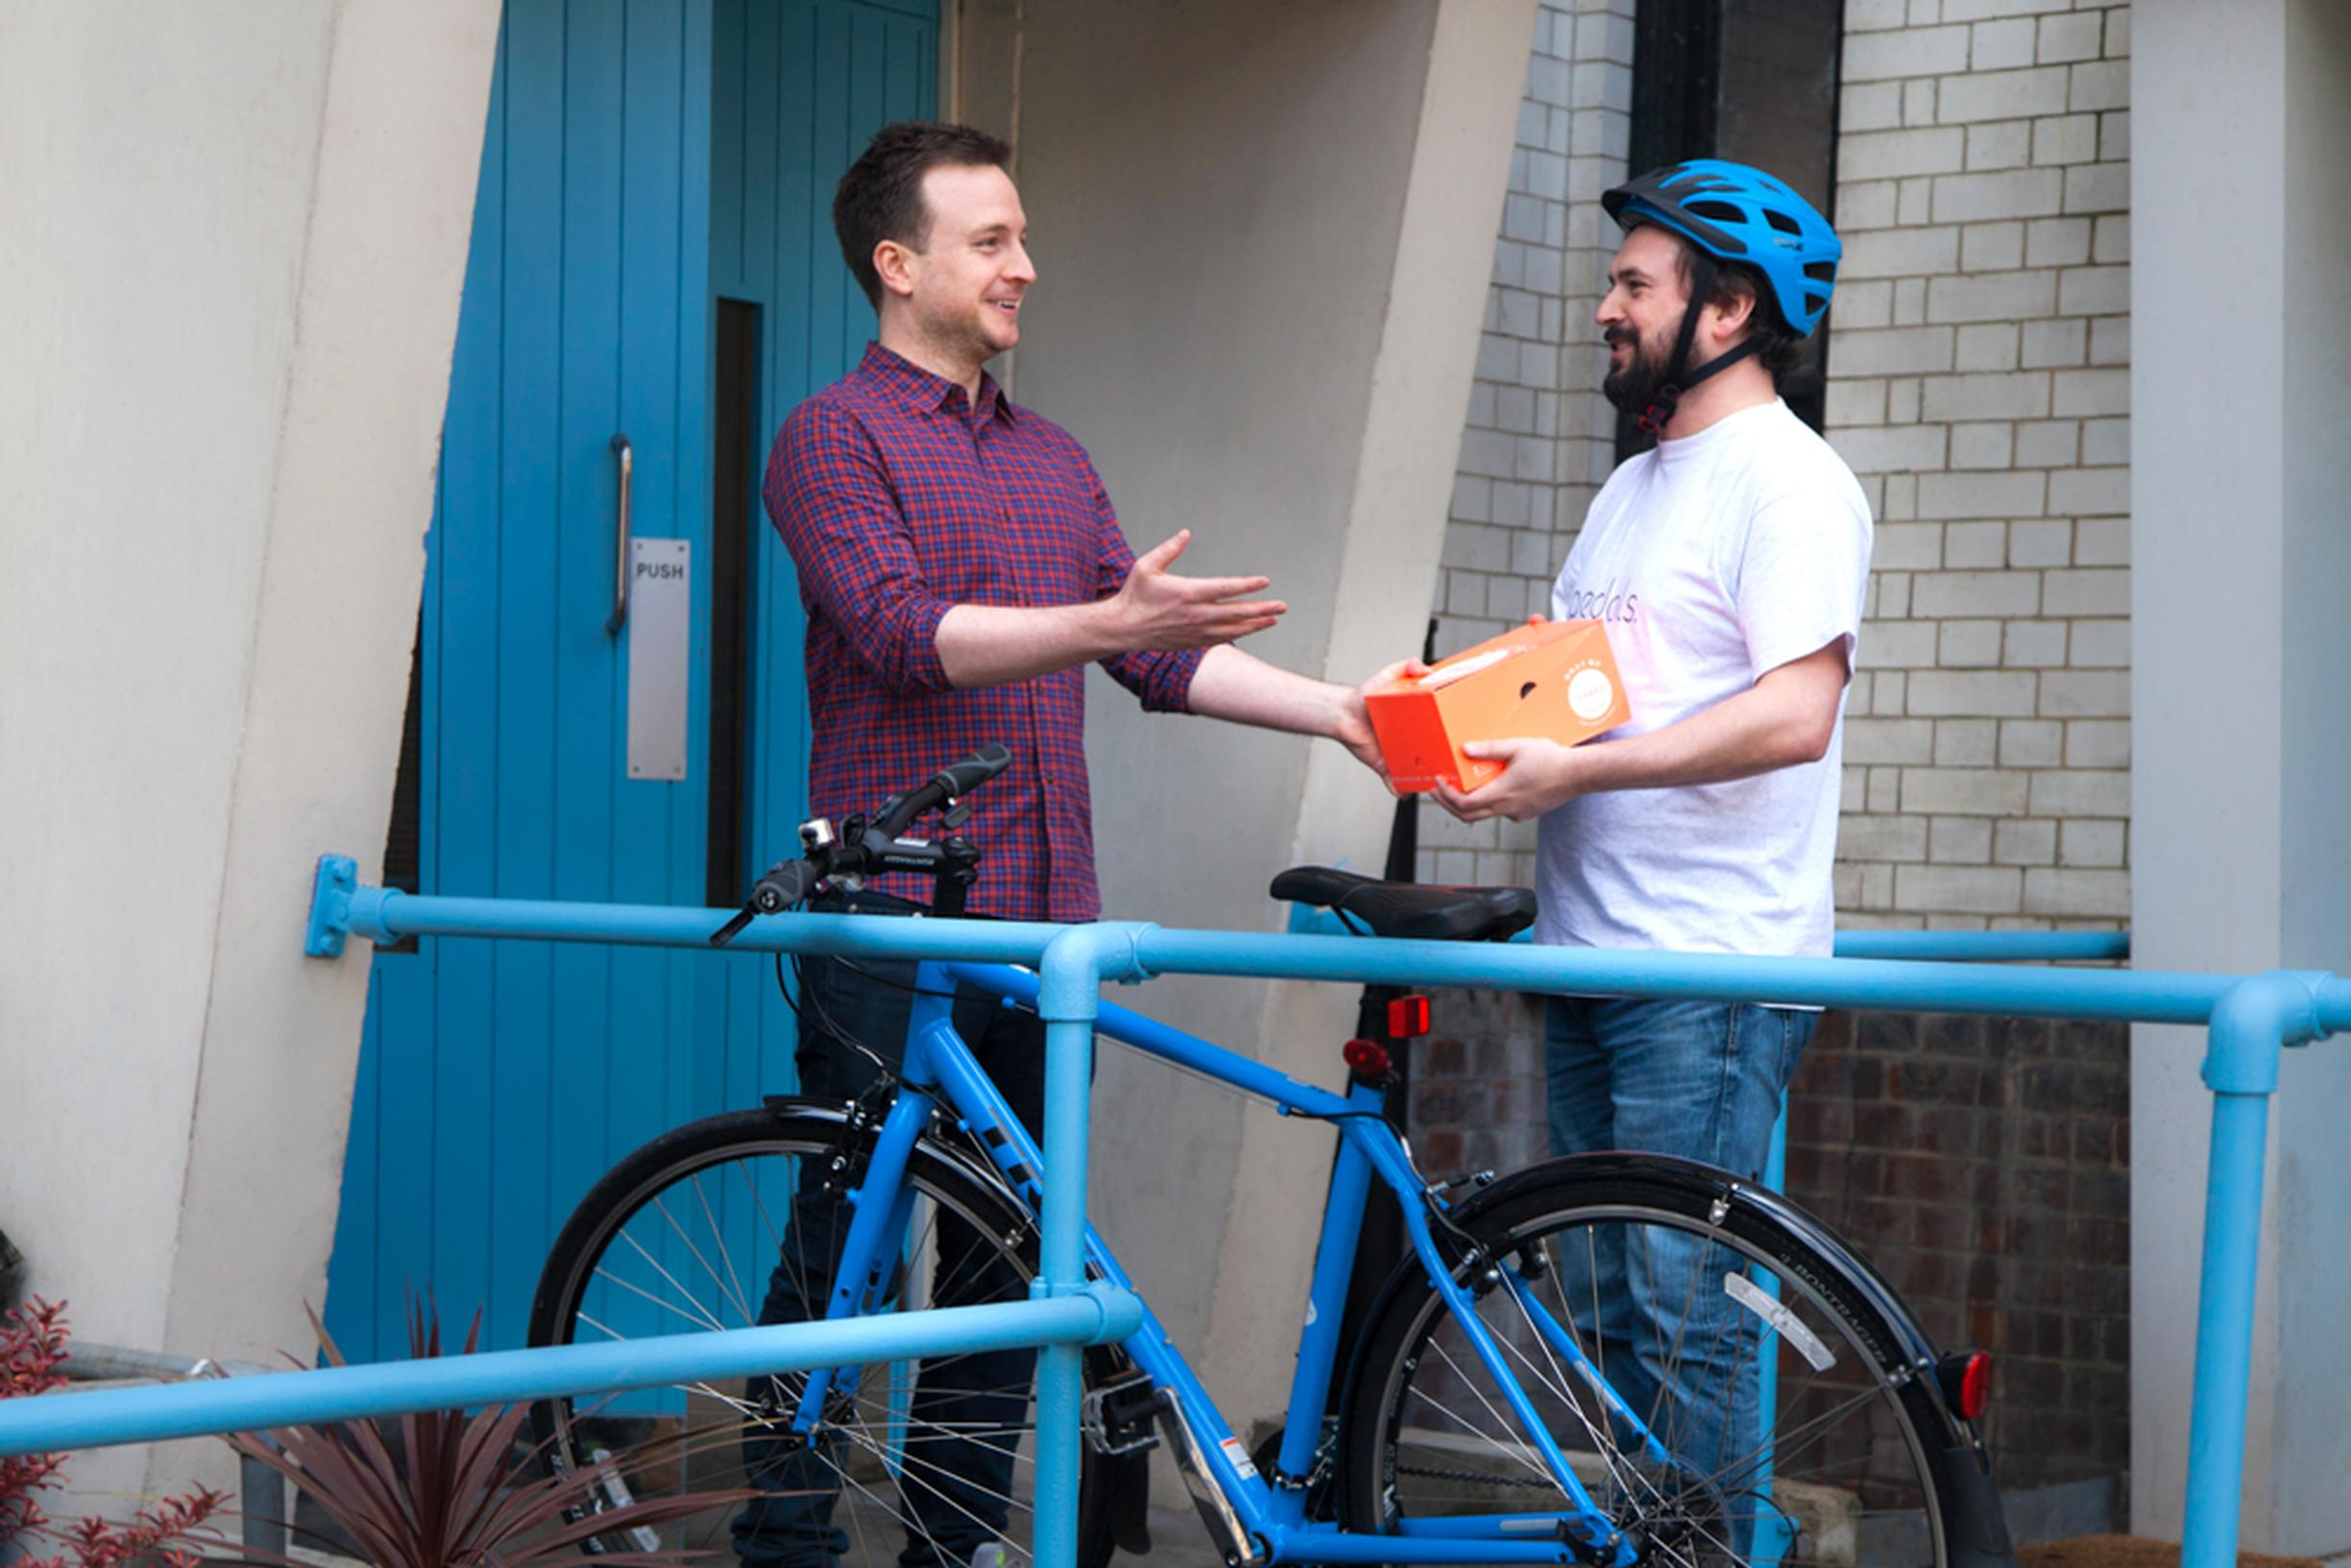 By using the Pedals app, commuters can earn extra cash by making deliveries during their ride to work